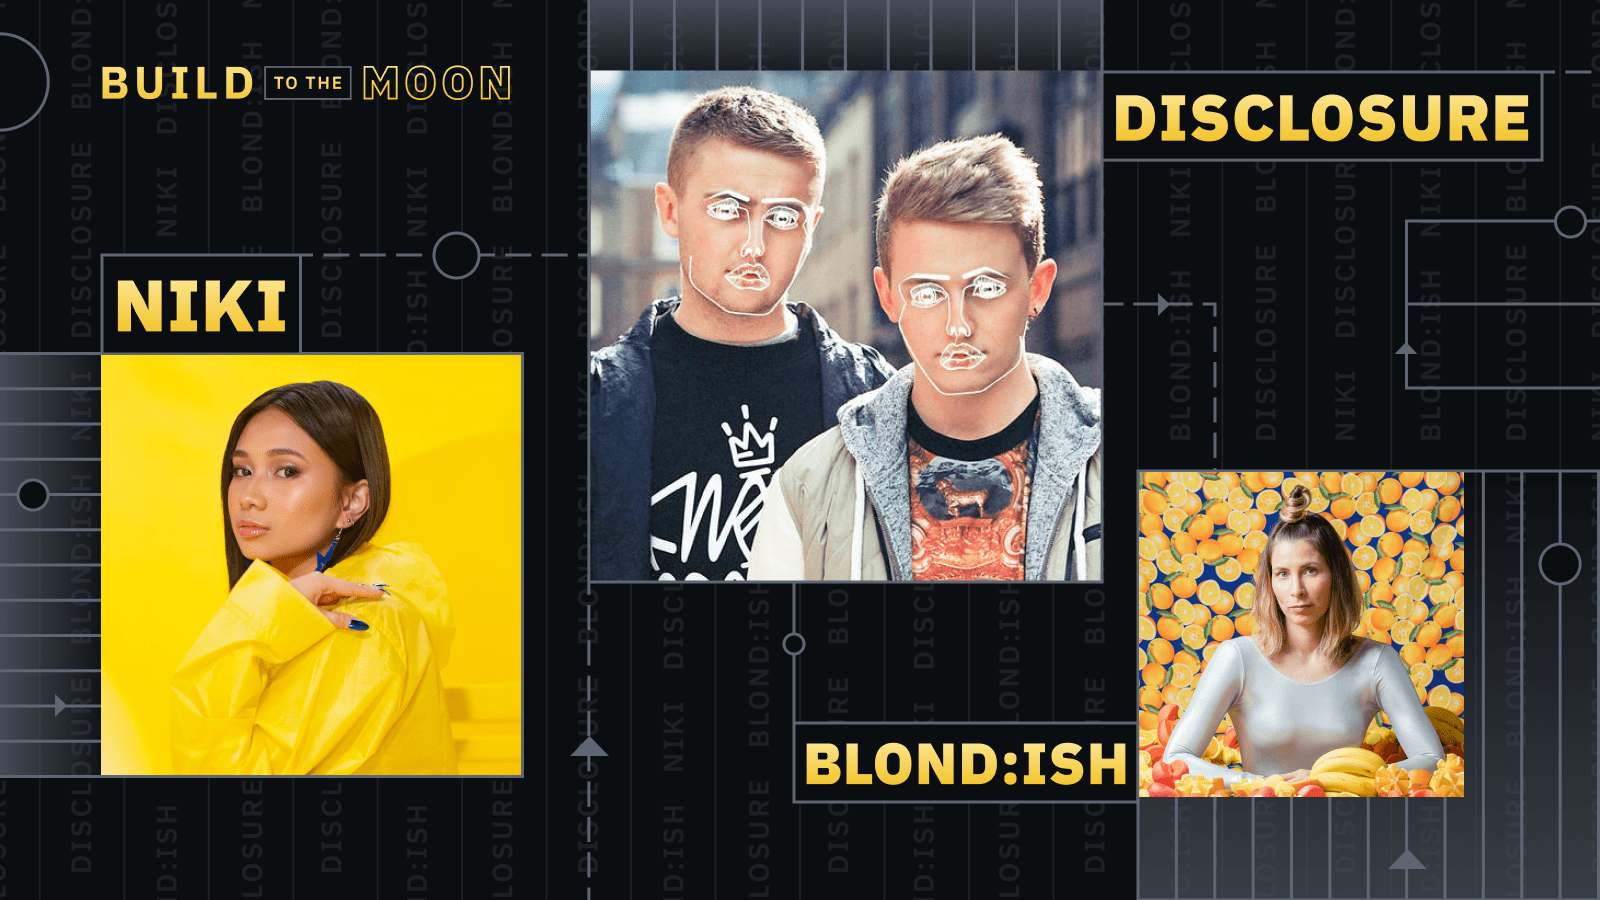 """""""Build to the Moon"""" Concert Experience Feat. Disclosure, NIKI, BLOND:ISH and More!Cryptocurrency Trading Signals, Strategies & Templates 